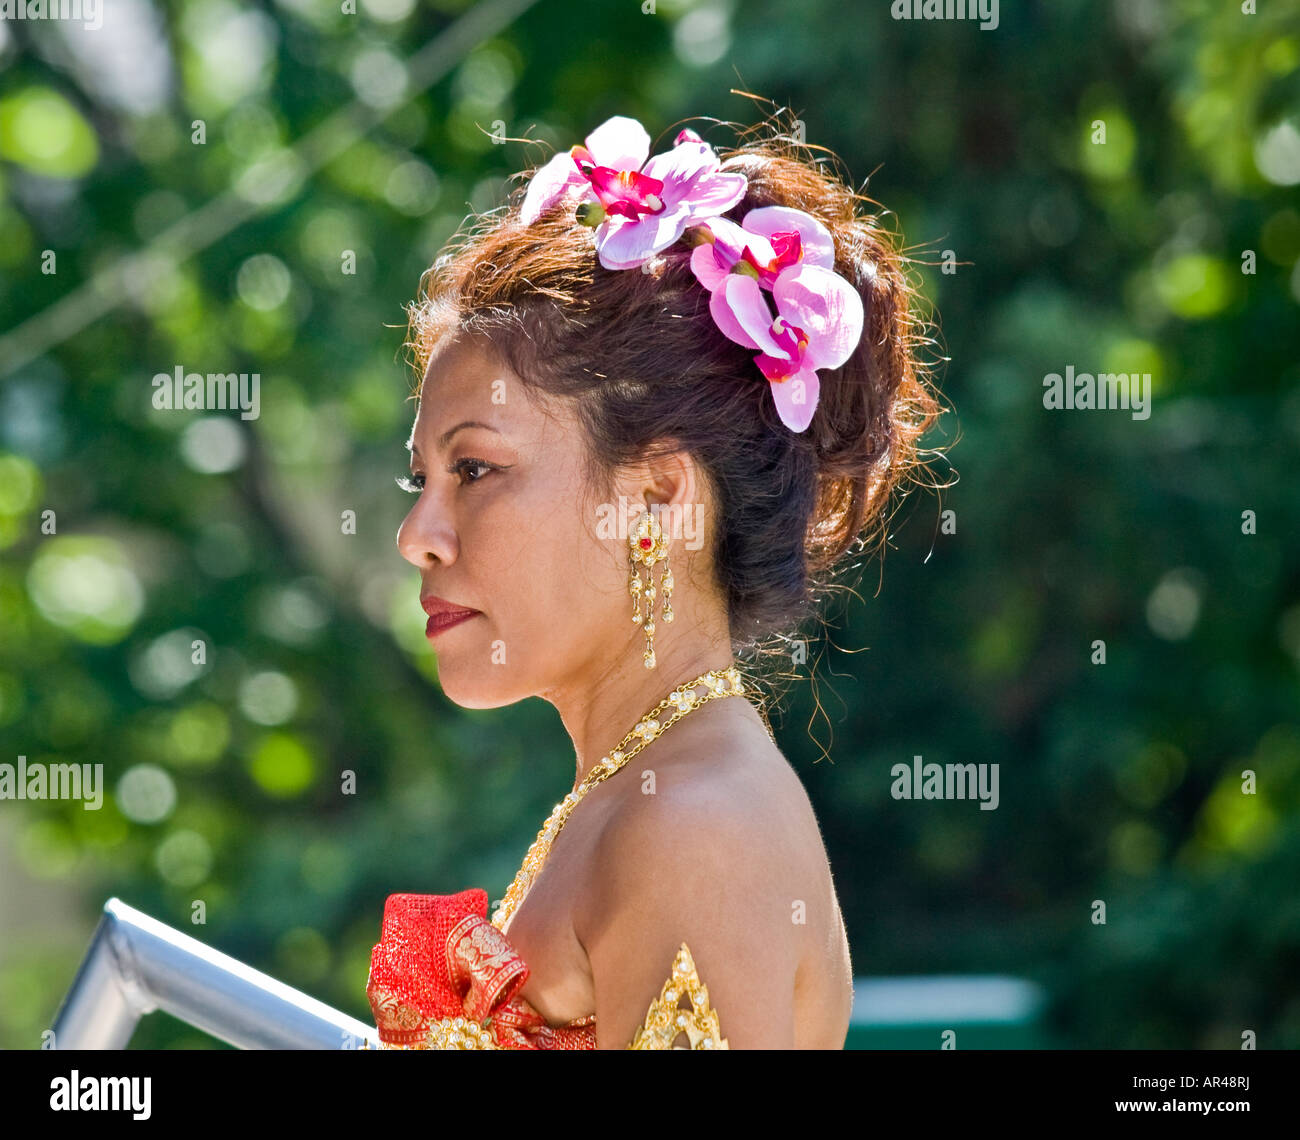 Woman In Traditional Thai Dress With Floral Hair Arrangement